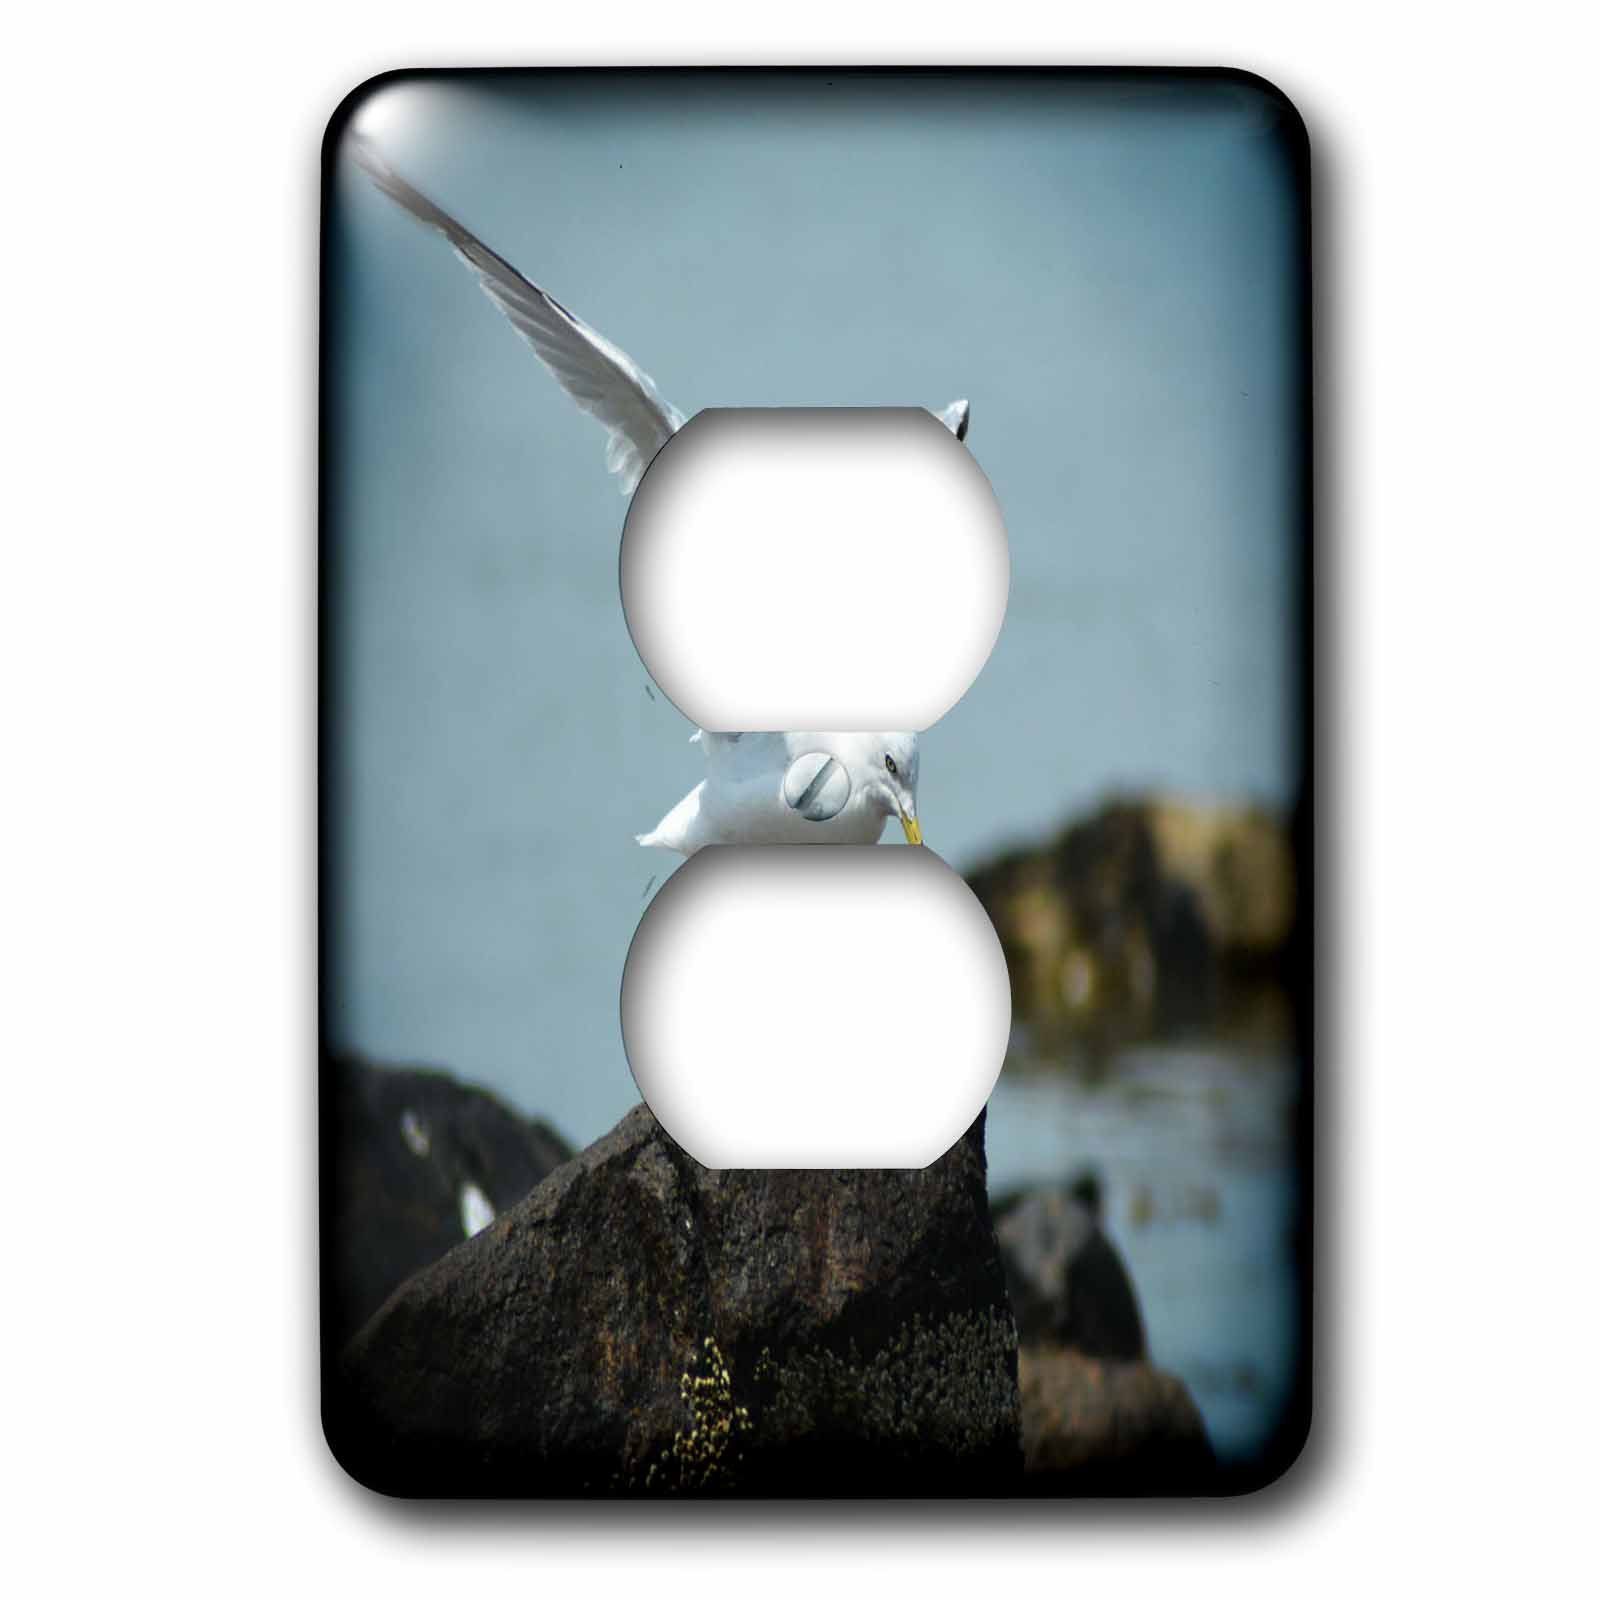 3dRose WhiteOaks Photography and Artwork - Seagulls - White Seagull with open Wings is a beautiful white seagull - Light Switch Covers - 2 plug outlet cover (lsp_265367_6)